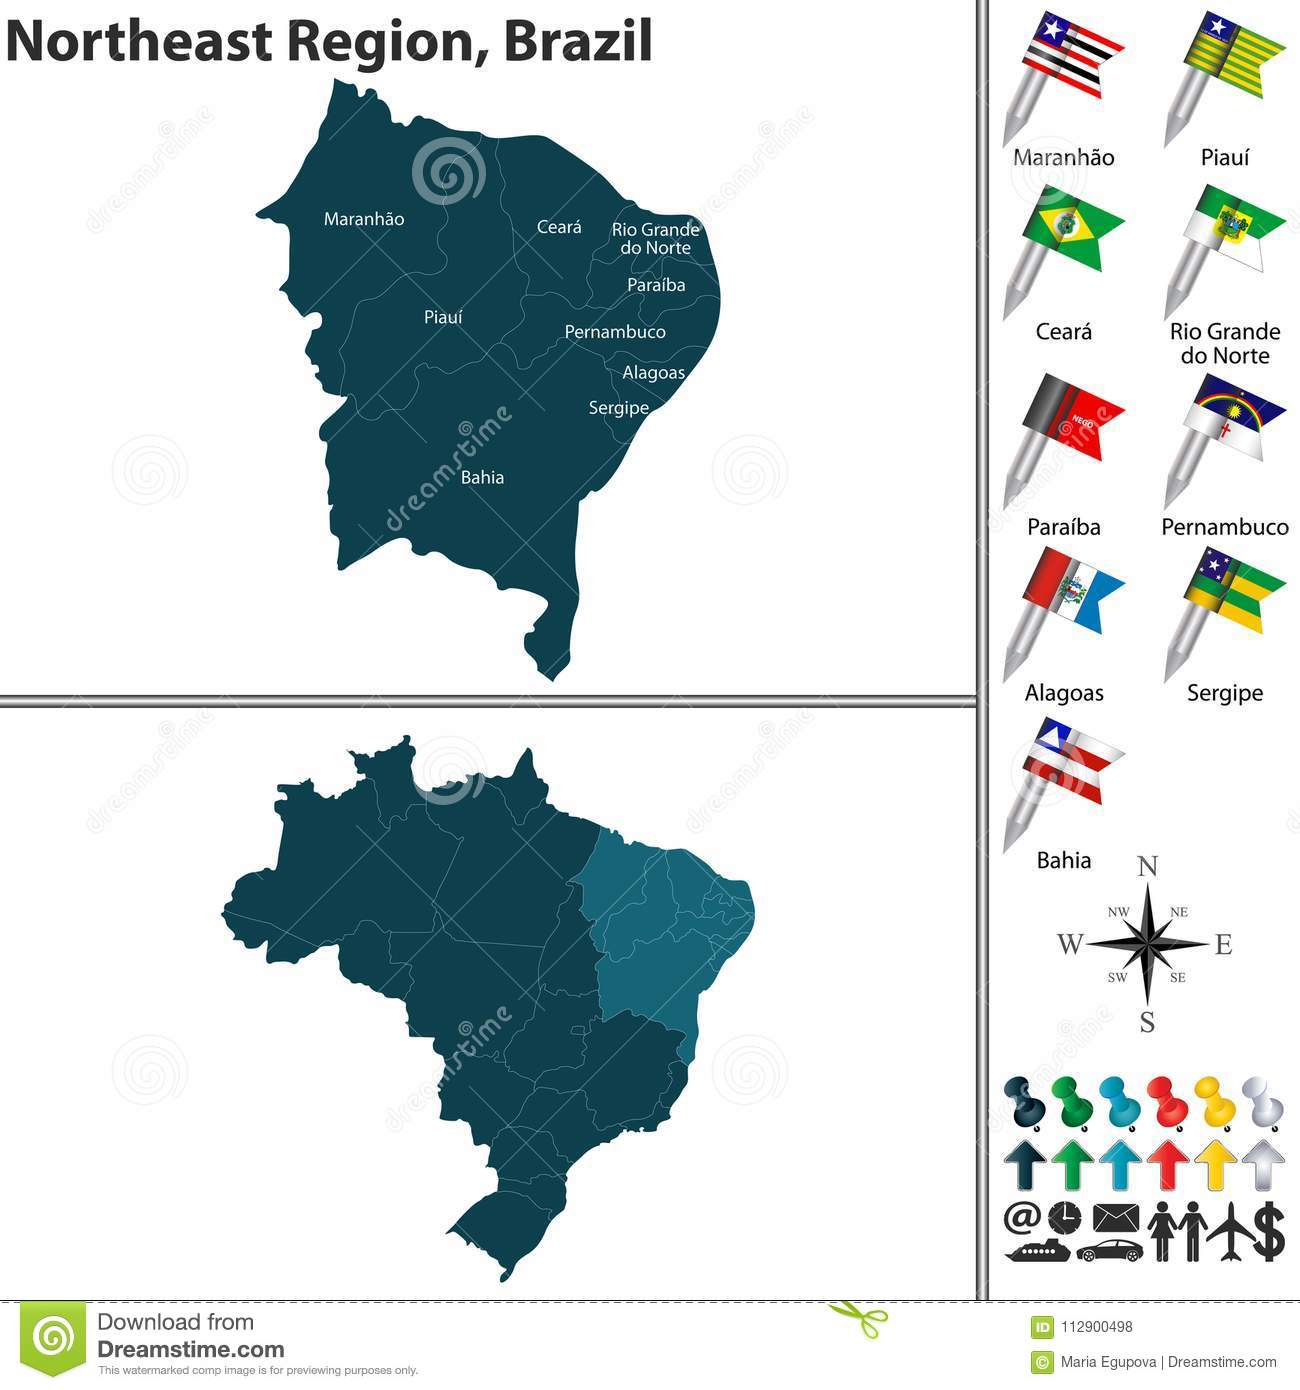 Northeast Region of Brazil stock vector. Illustration of maranhao ...